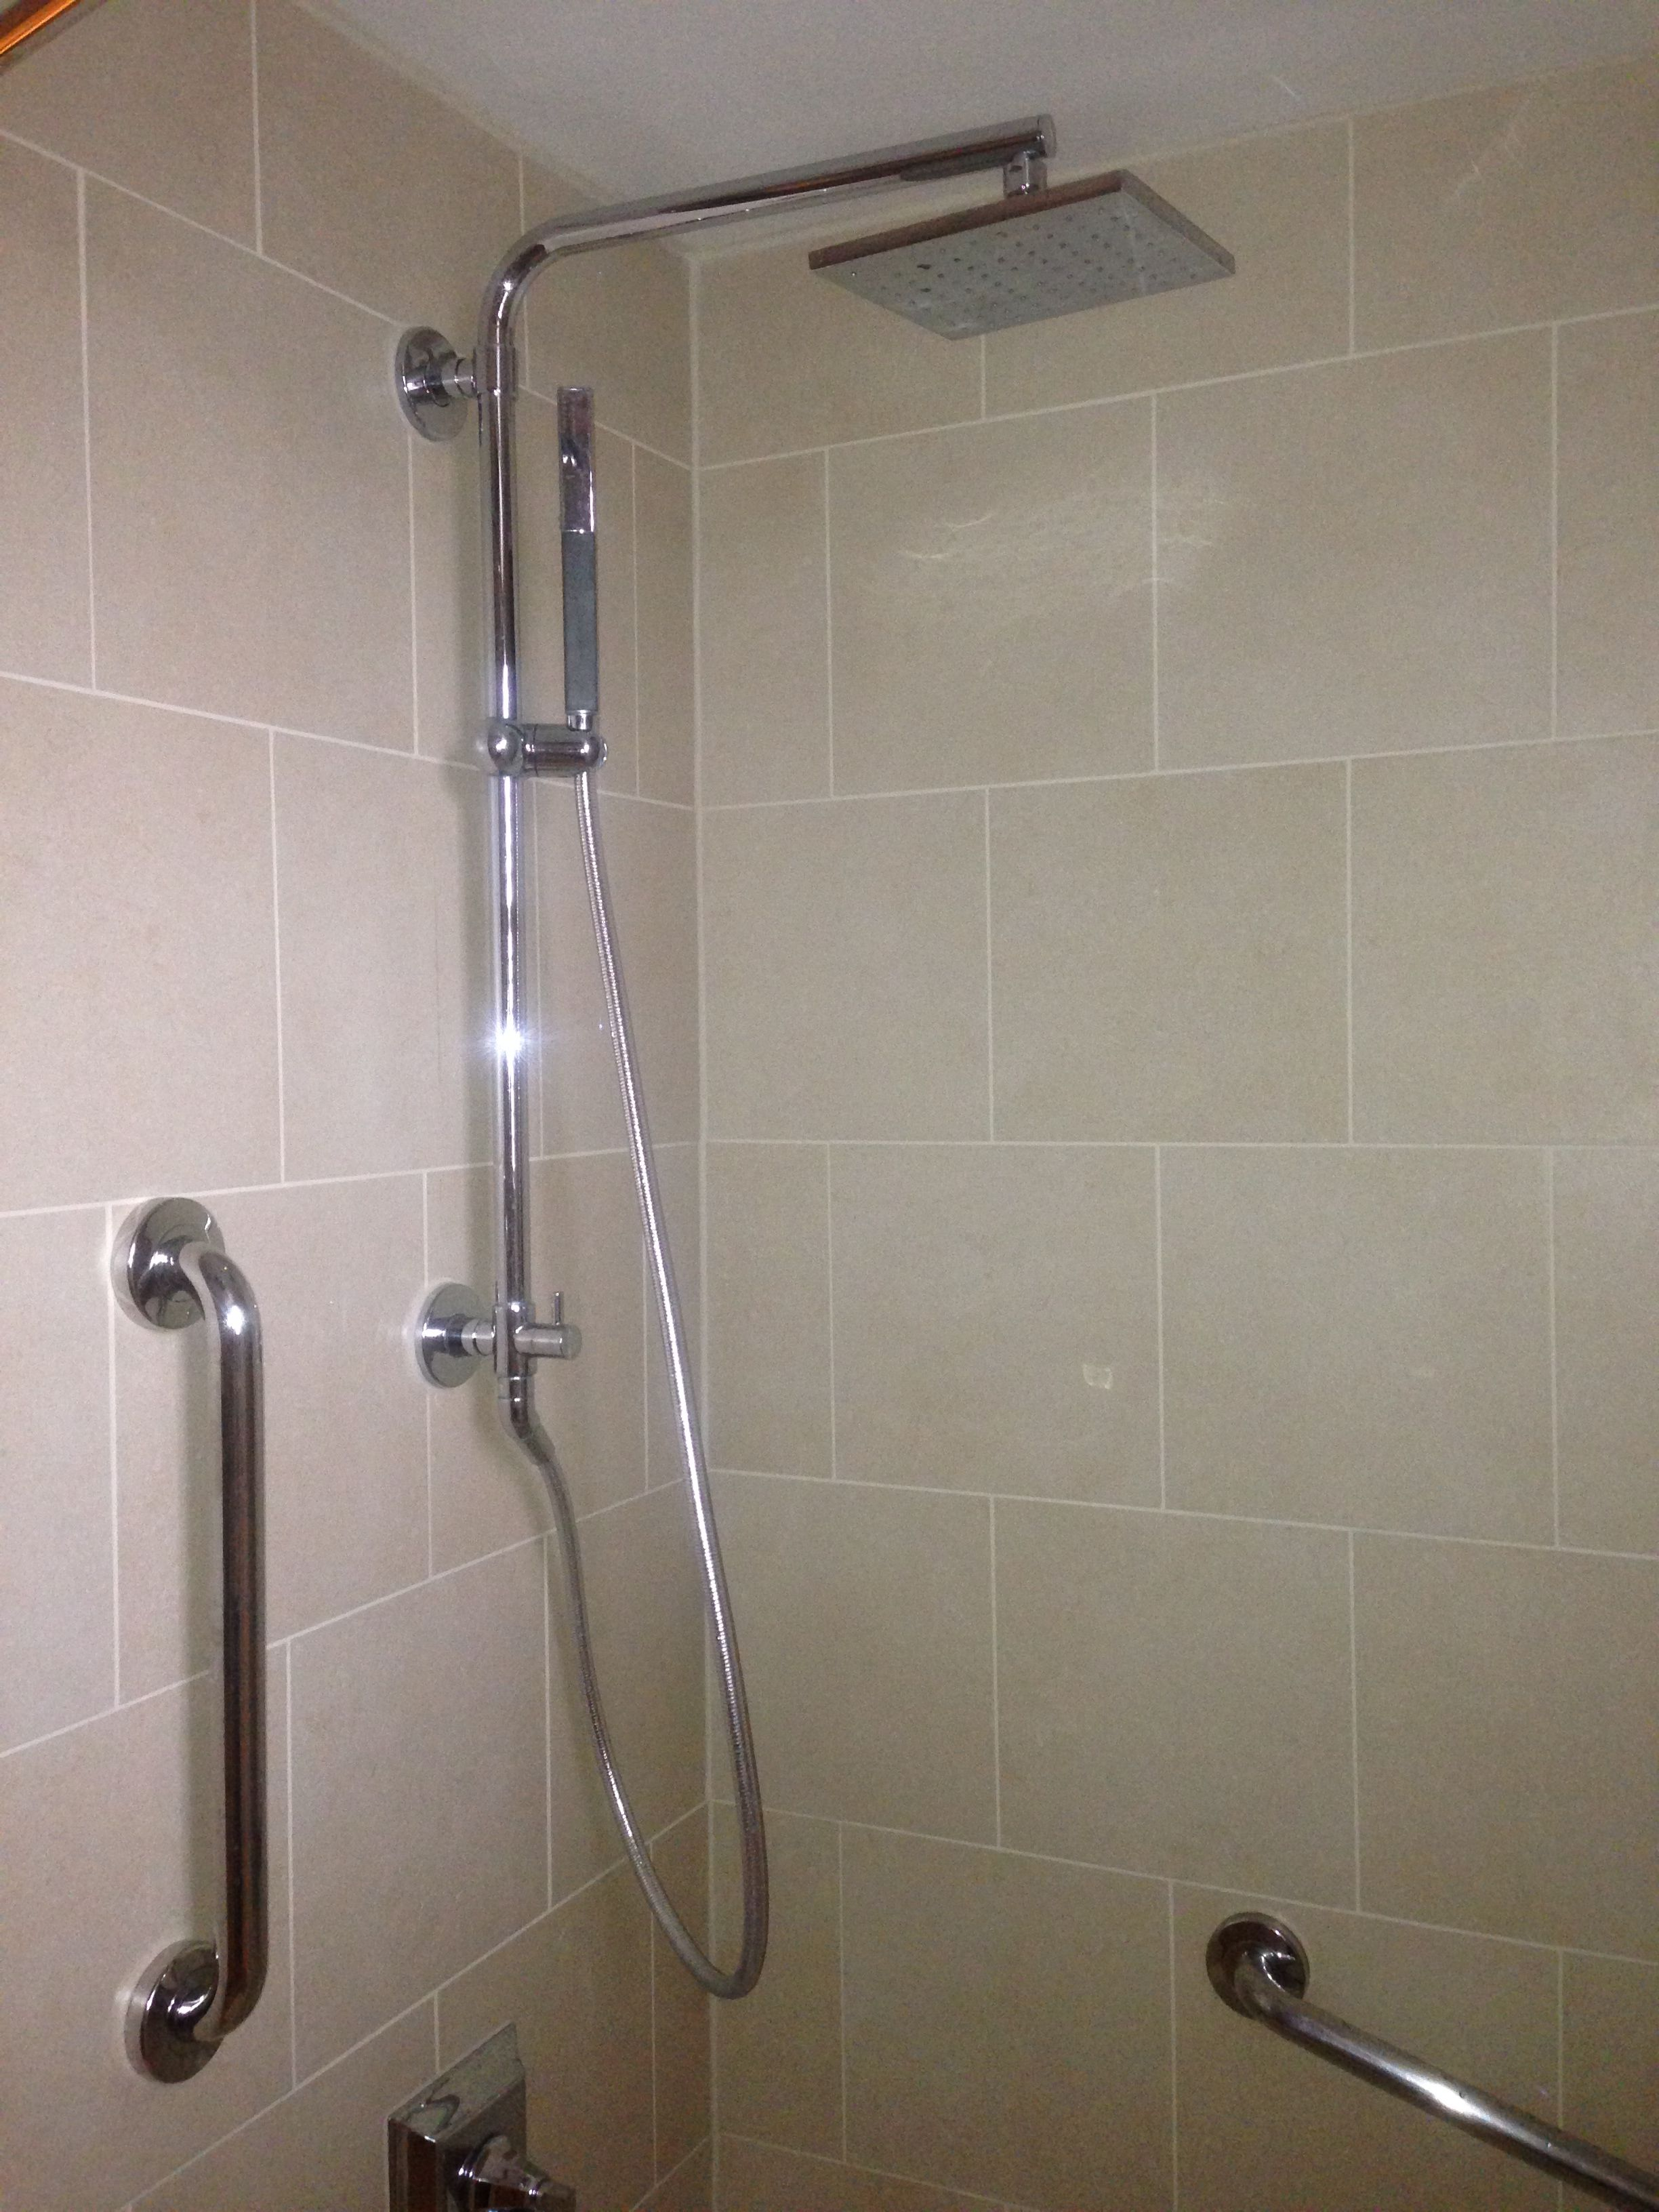 Rain Shower Head With Wand Rain Shower Head Rain Shower Shower